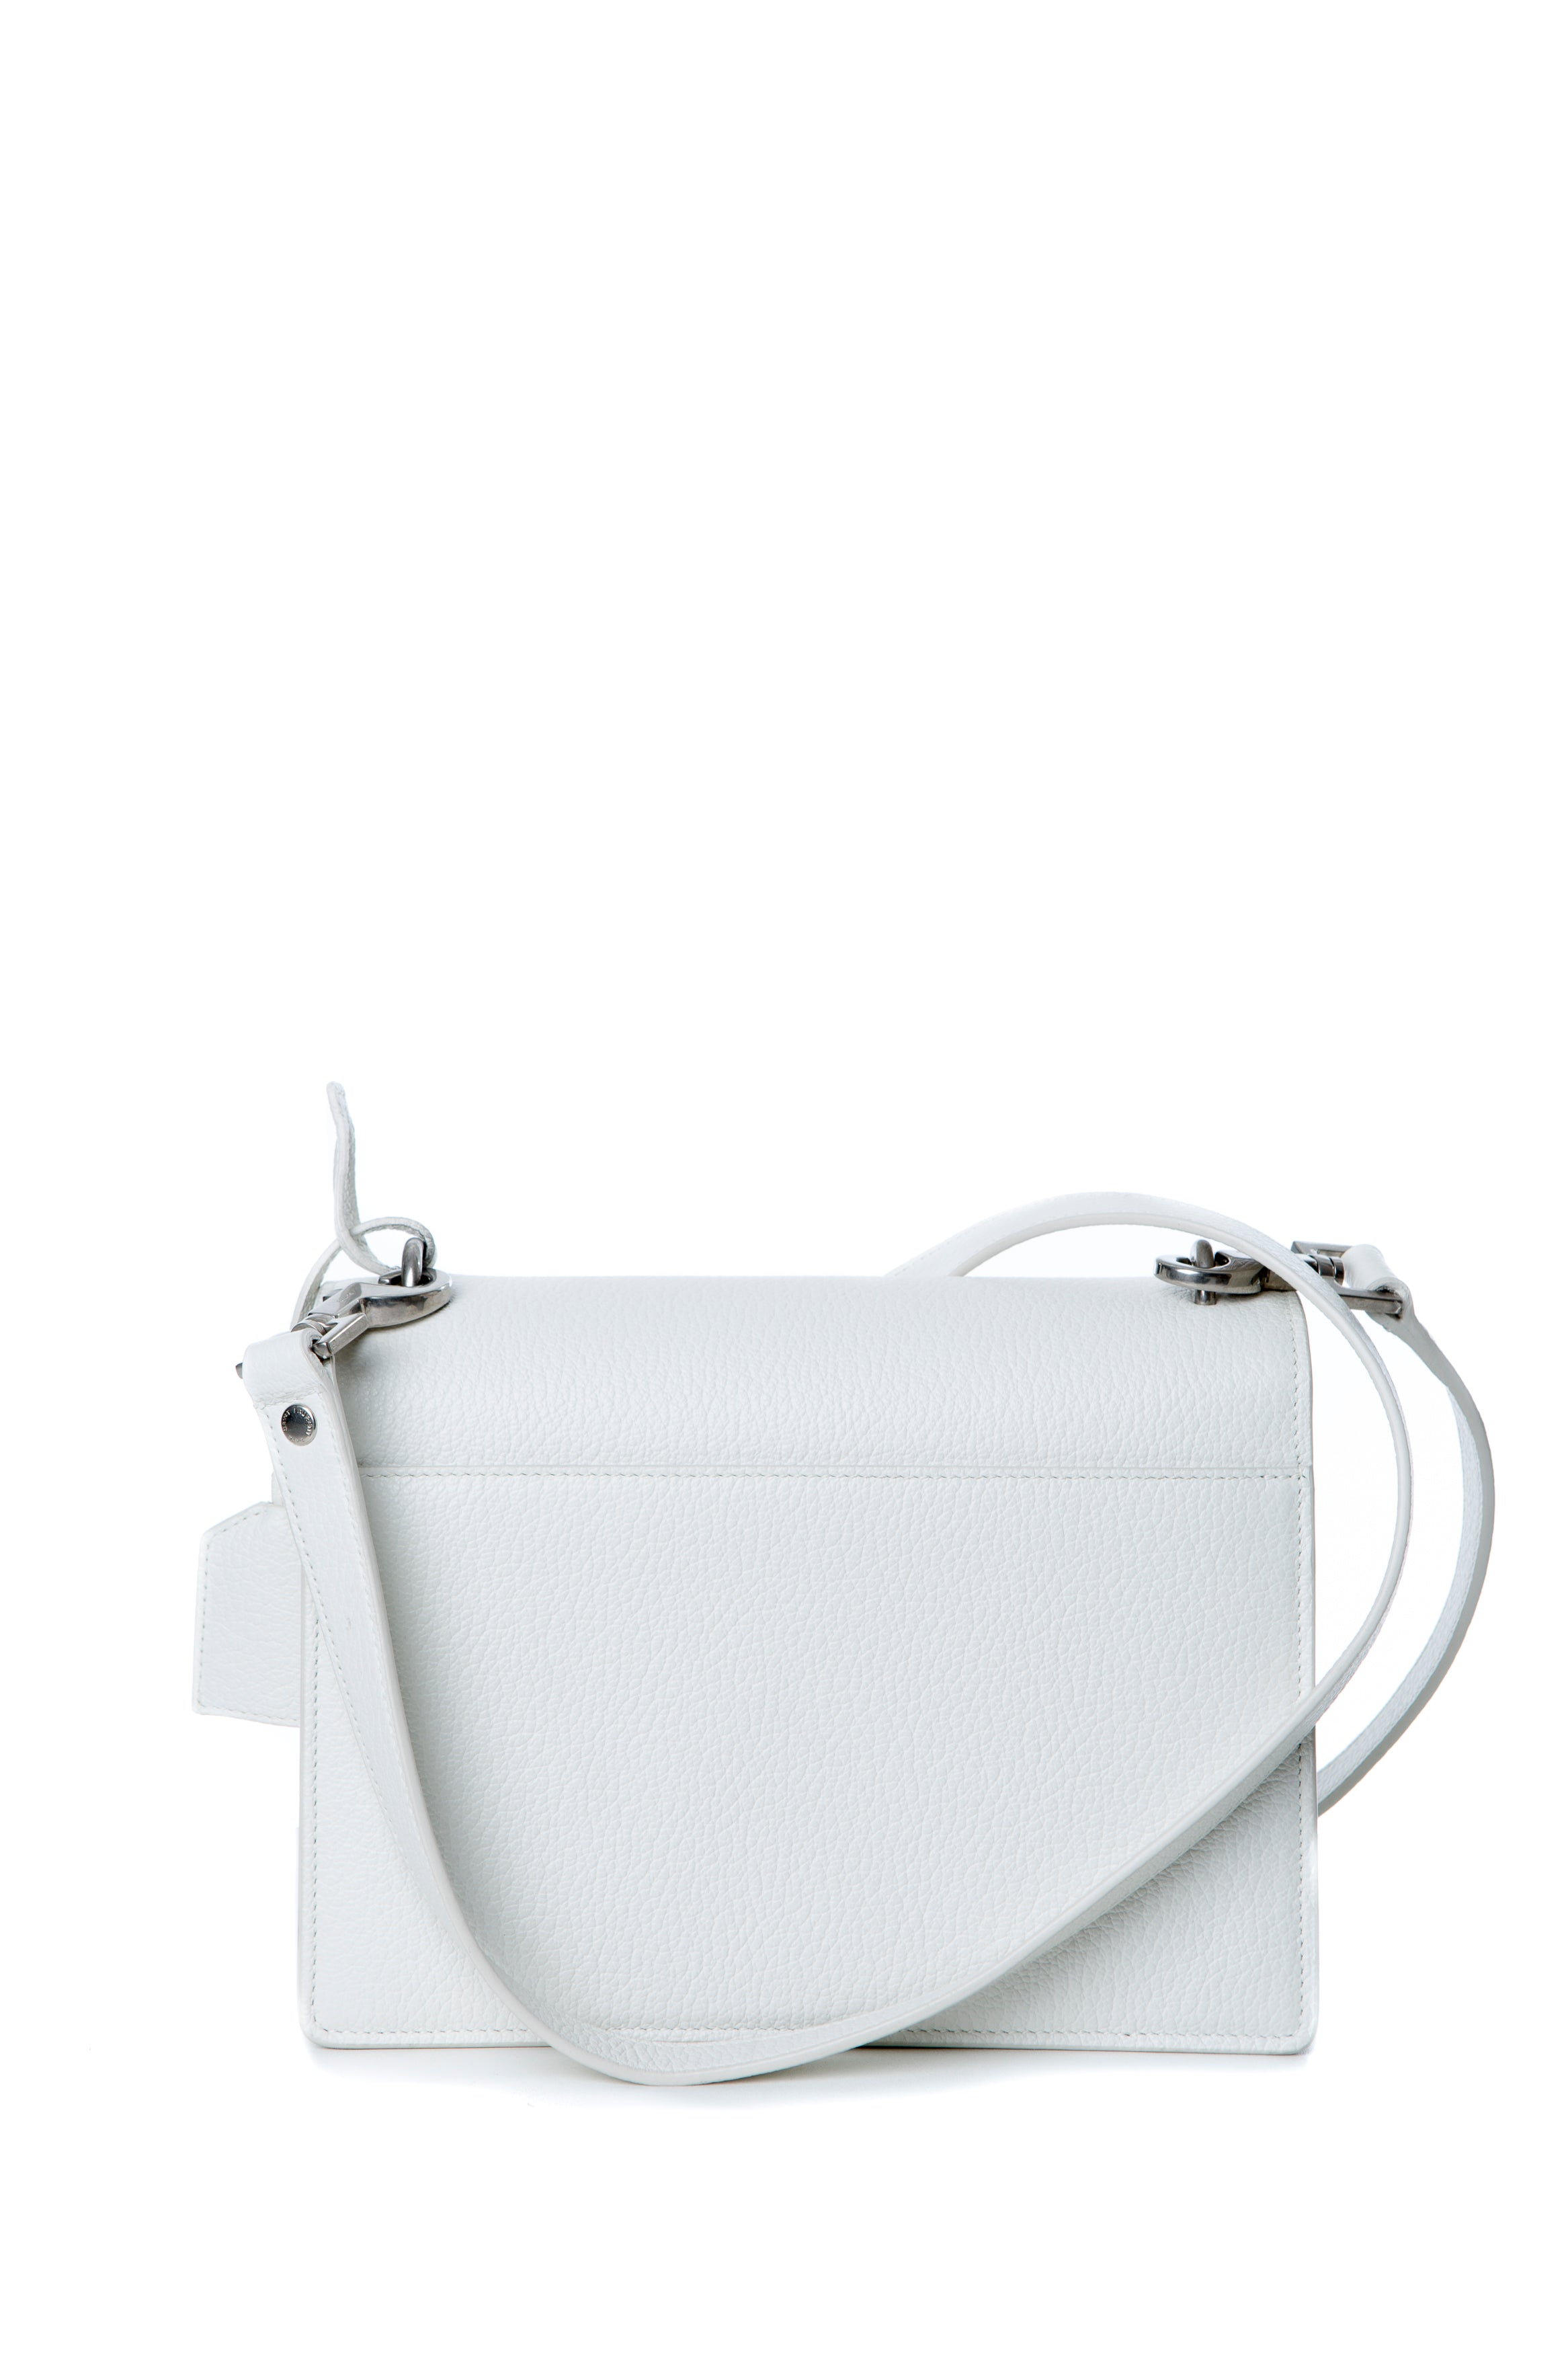 MEDIUM SUNSET BAG DOVE WHITE